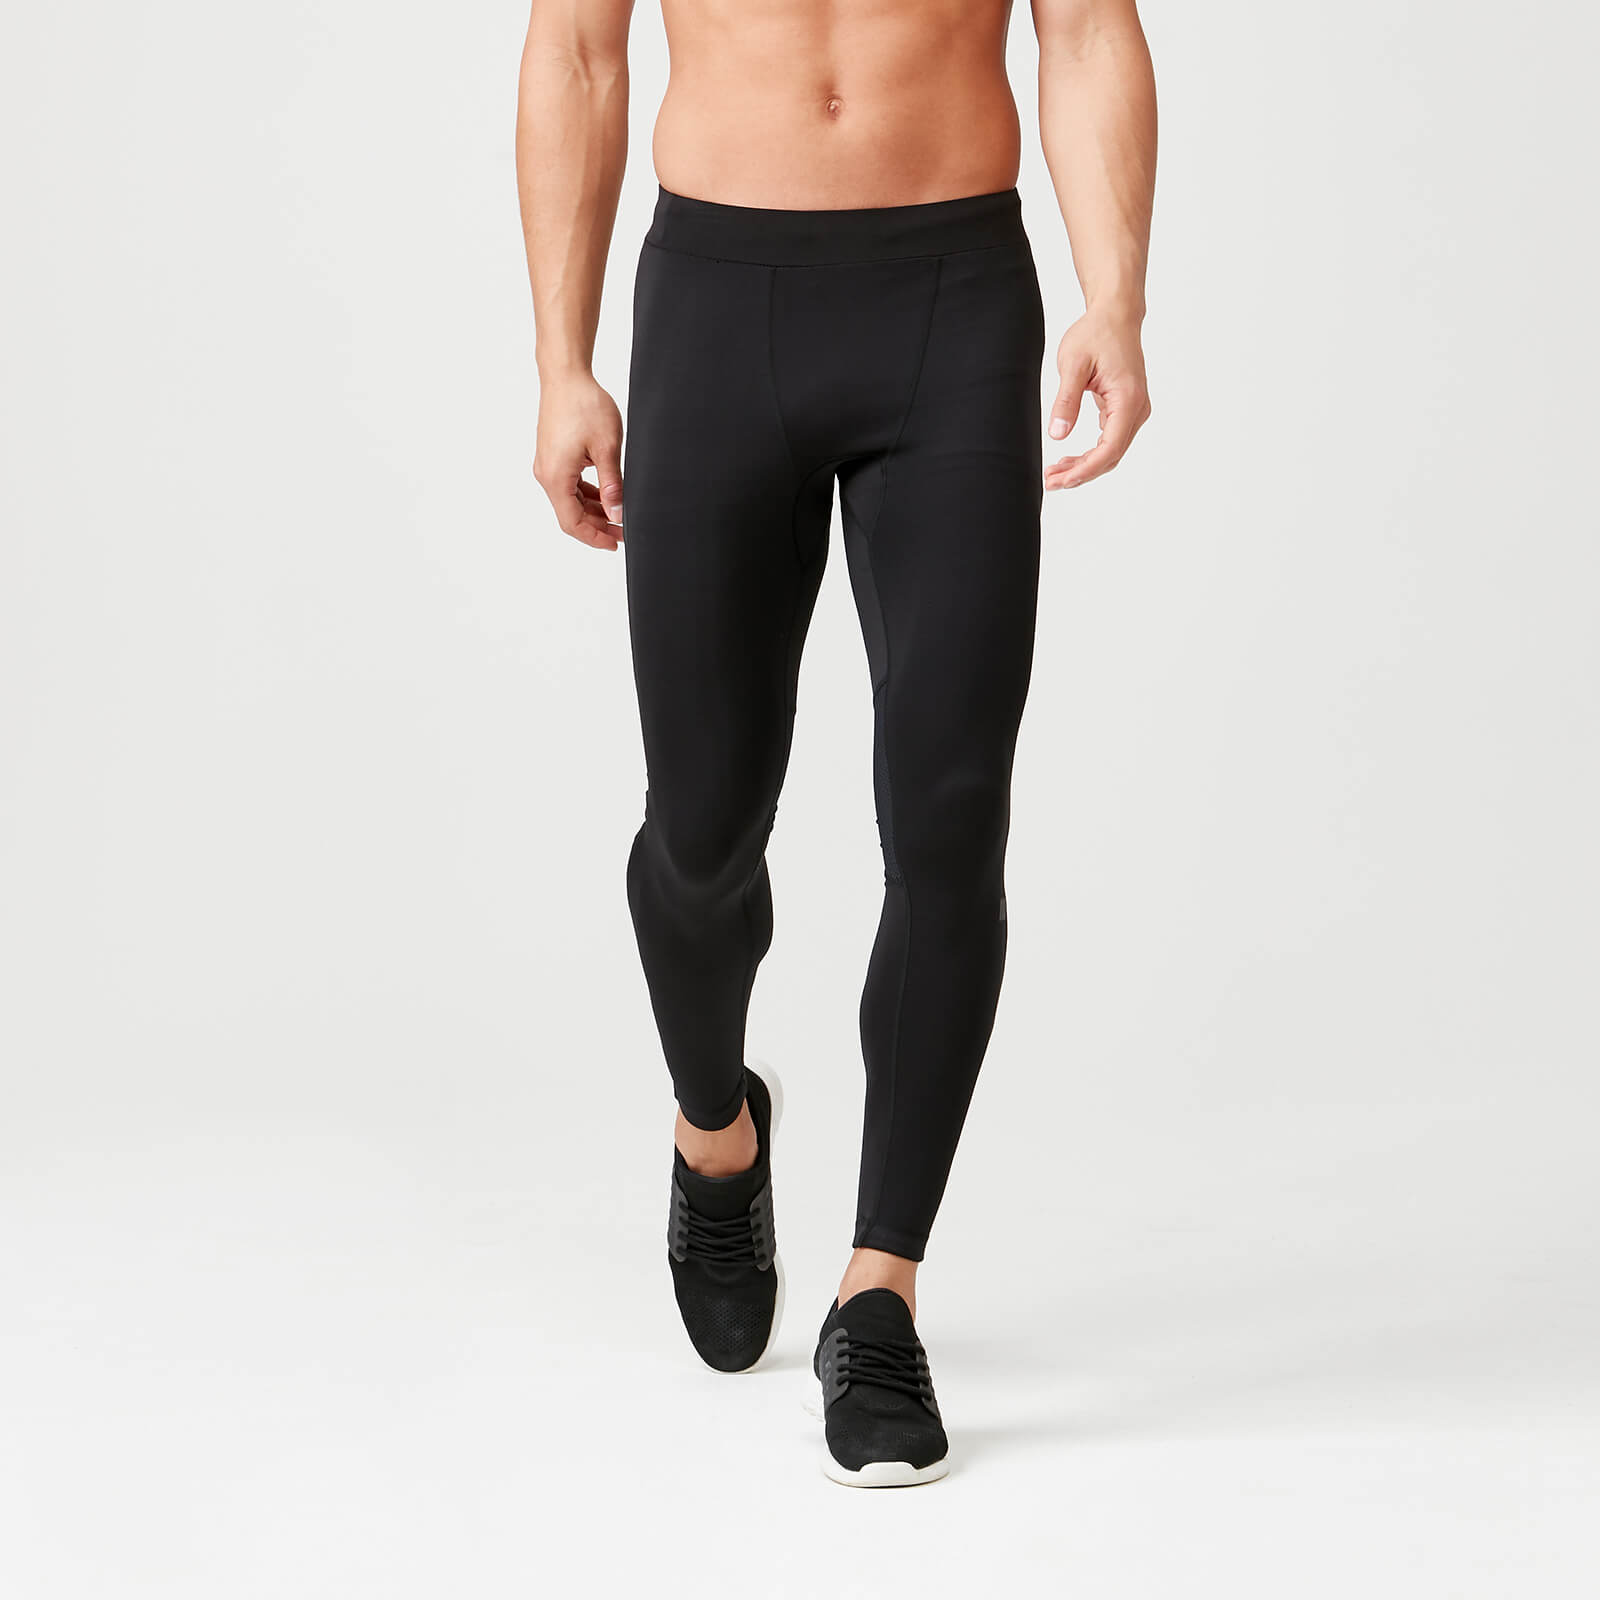 Boost Tights - Black - S